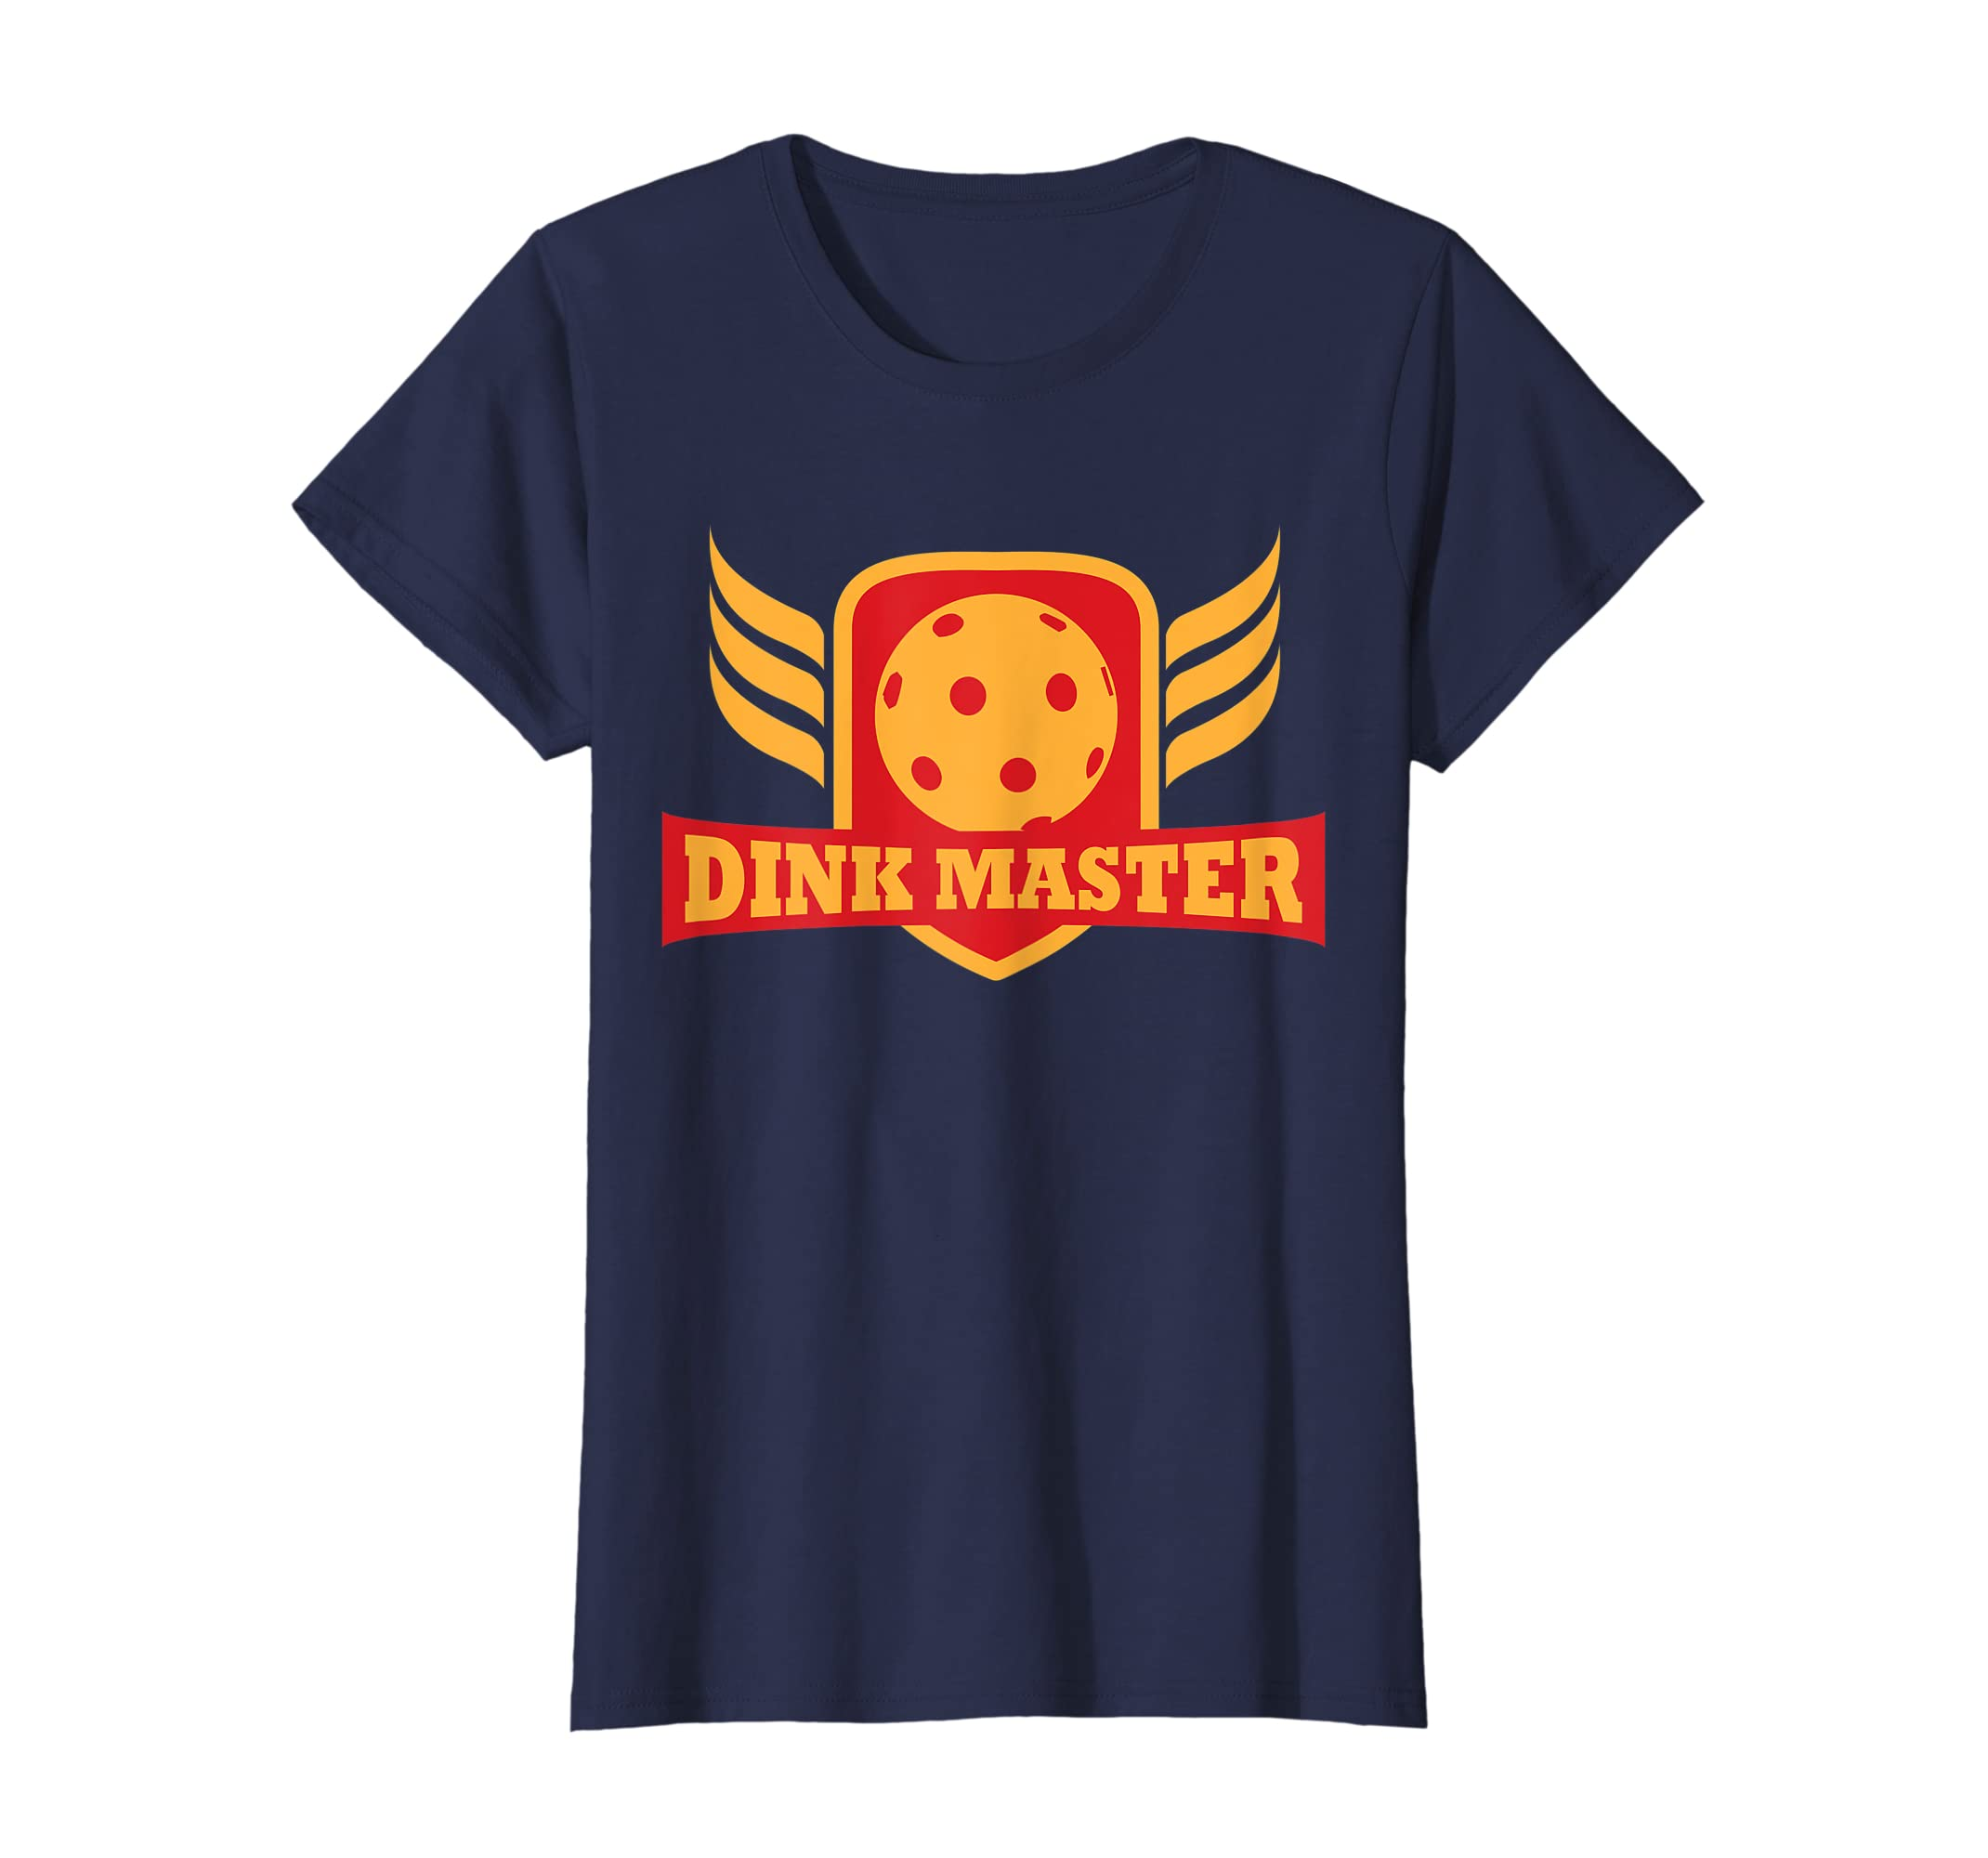 ccf1a528 Amazon.com: Dink Master Pickleball T-Shirt - Pickle Ball Tee: Clothing